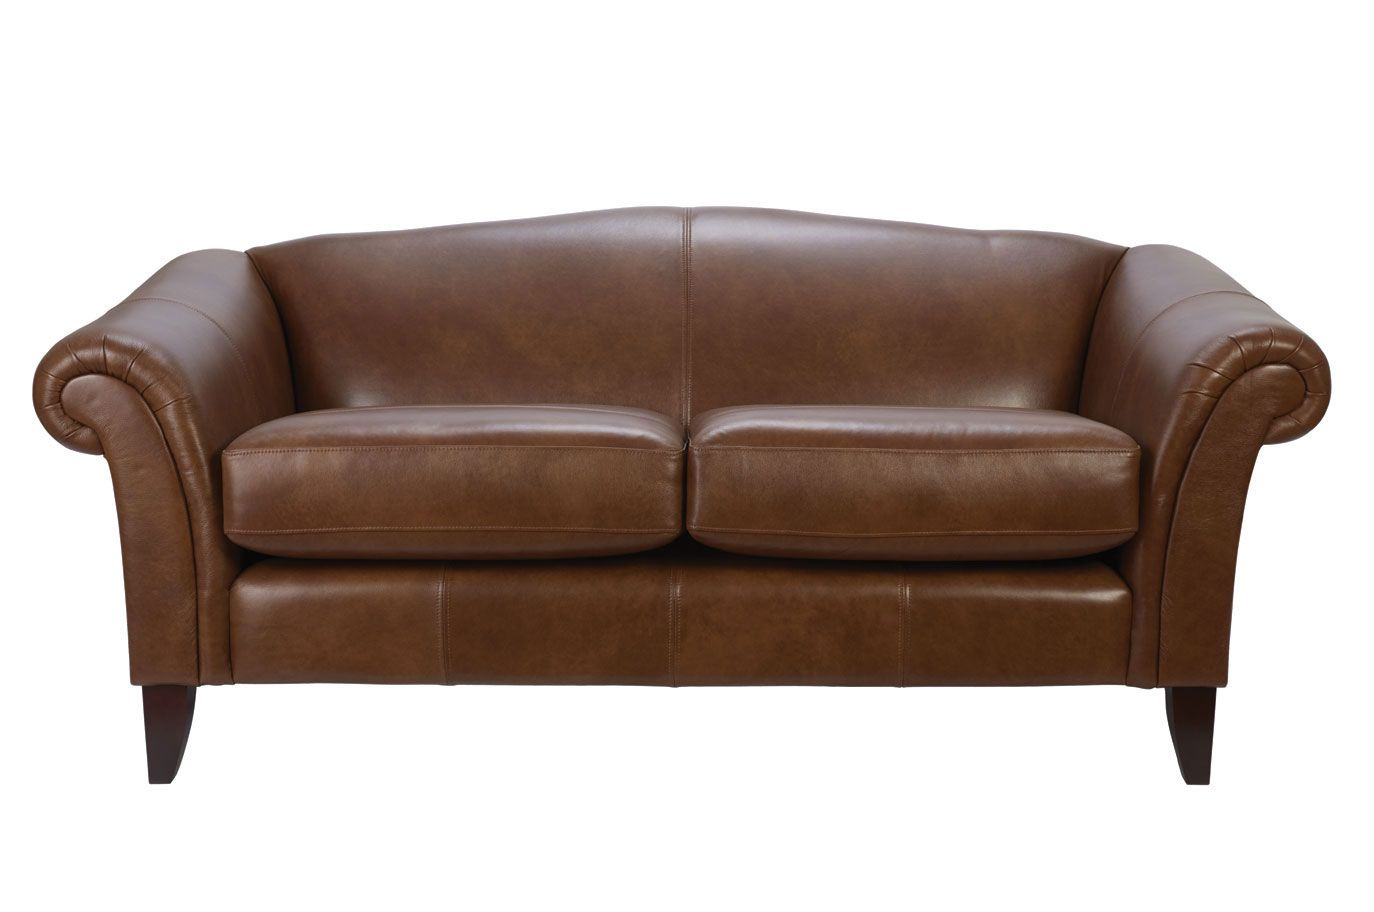 Embleton Large 2 Seater Laura Ashley In Leather Harvest